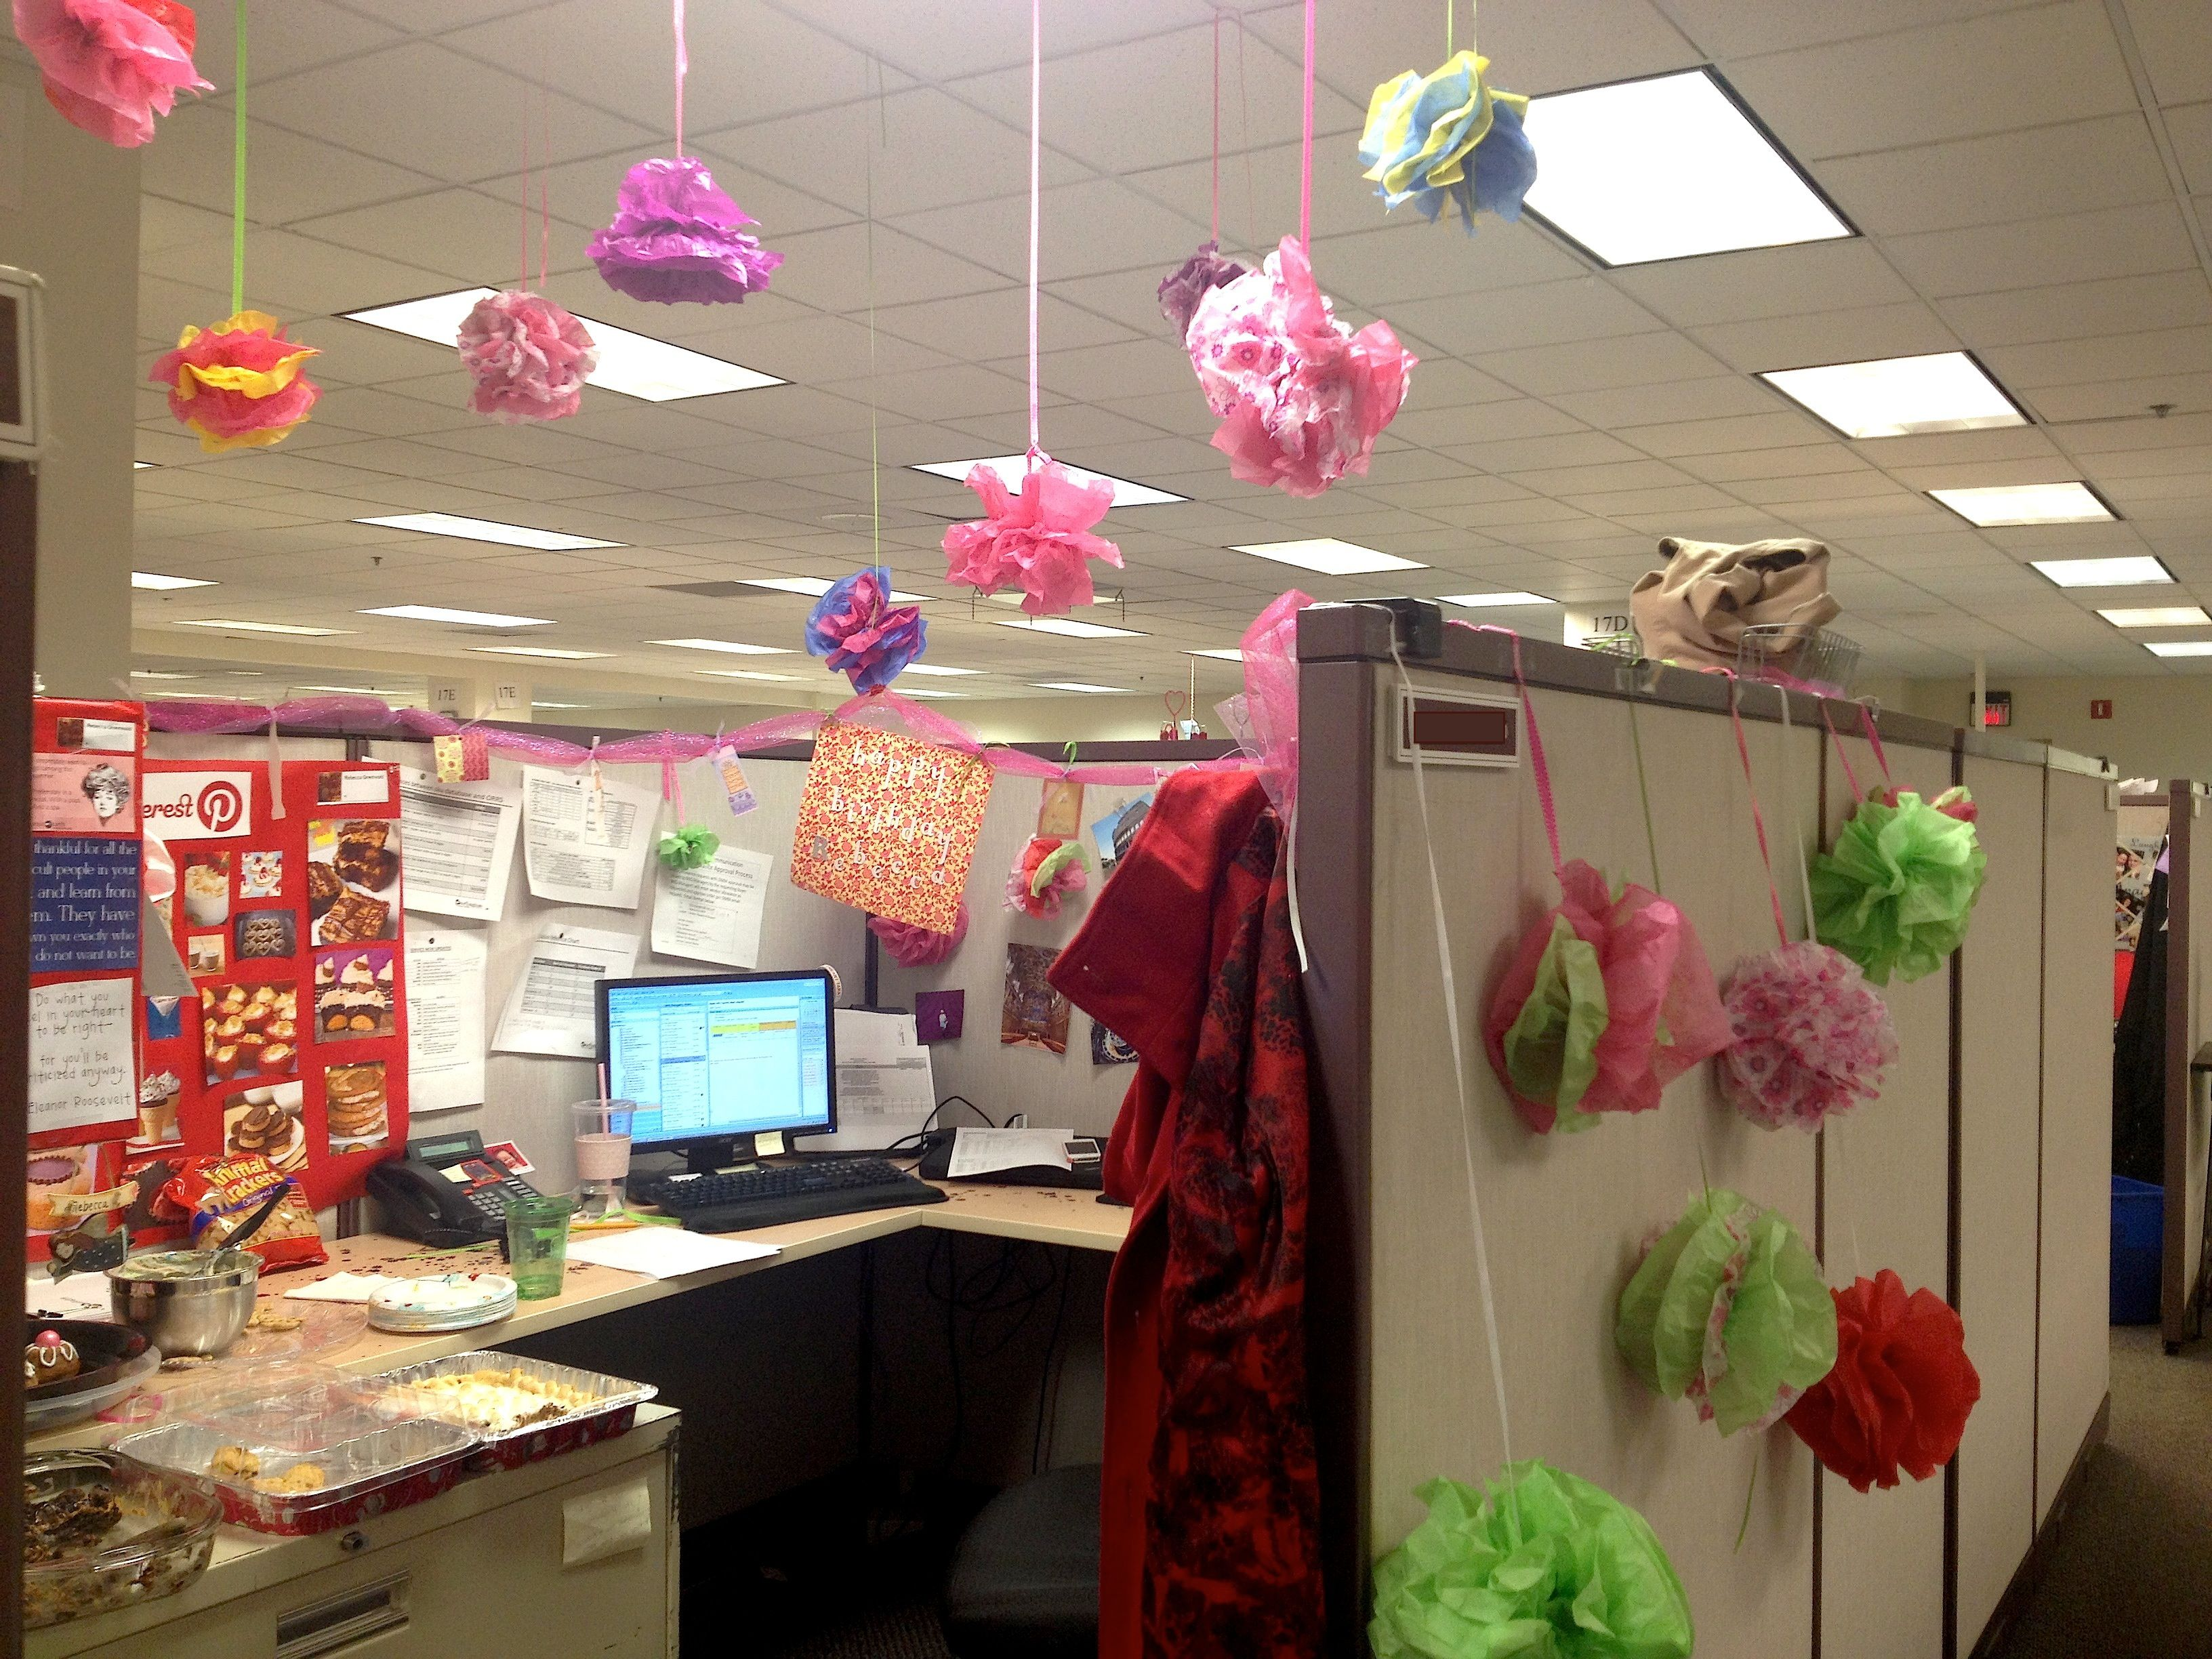 An Employee S Office Decorated For Their Birthday Using Only Ideas